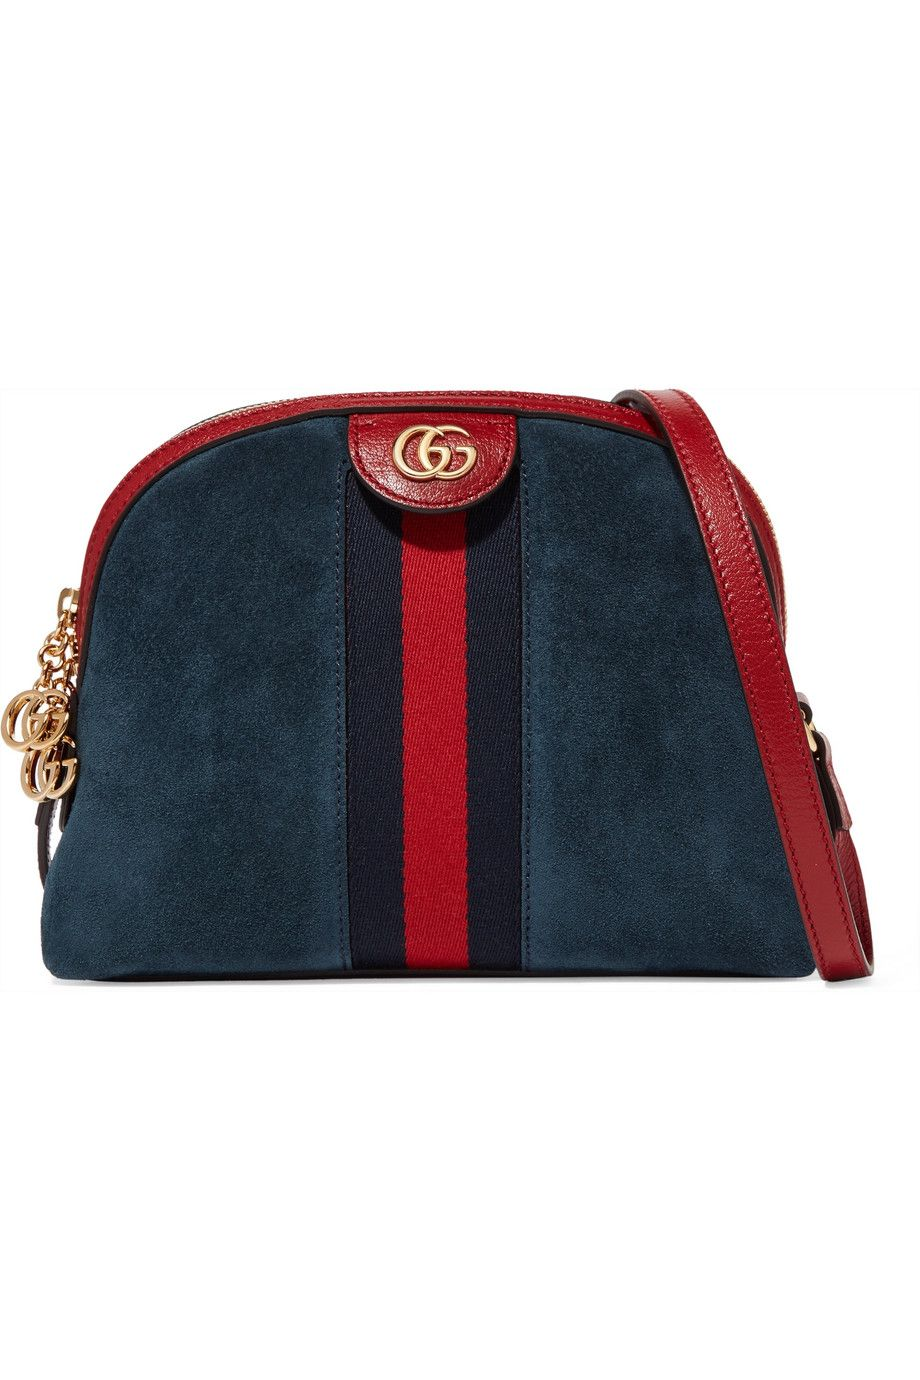 a61a065d6faa Gucci | Ophidia patent leather-trimmed suede shoulder bag | NET-A-PORTER.COM